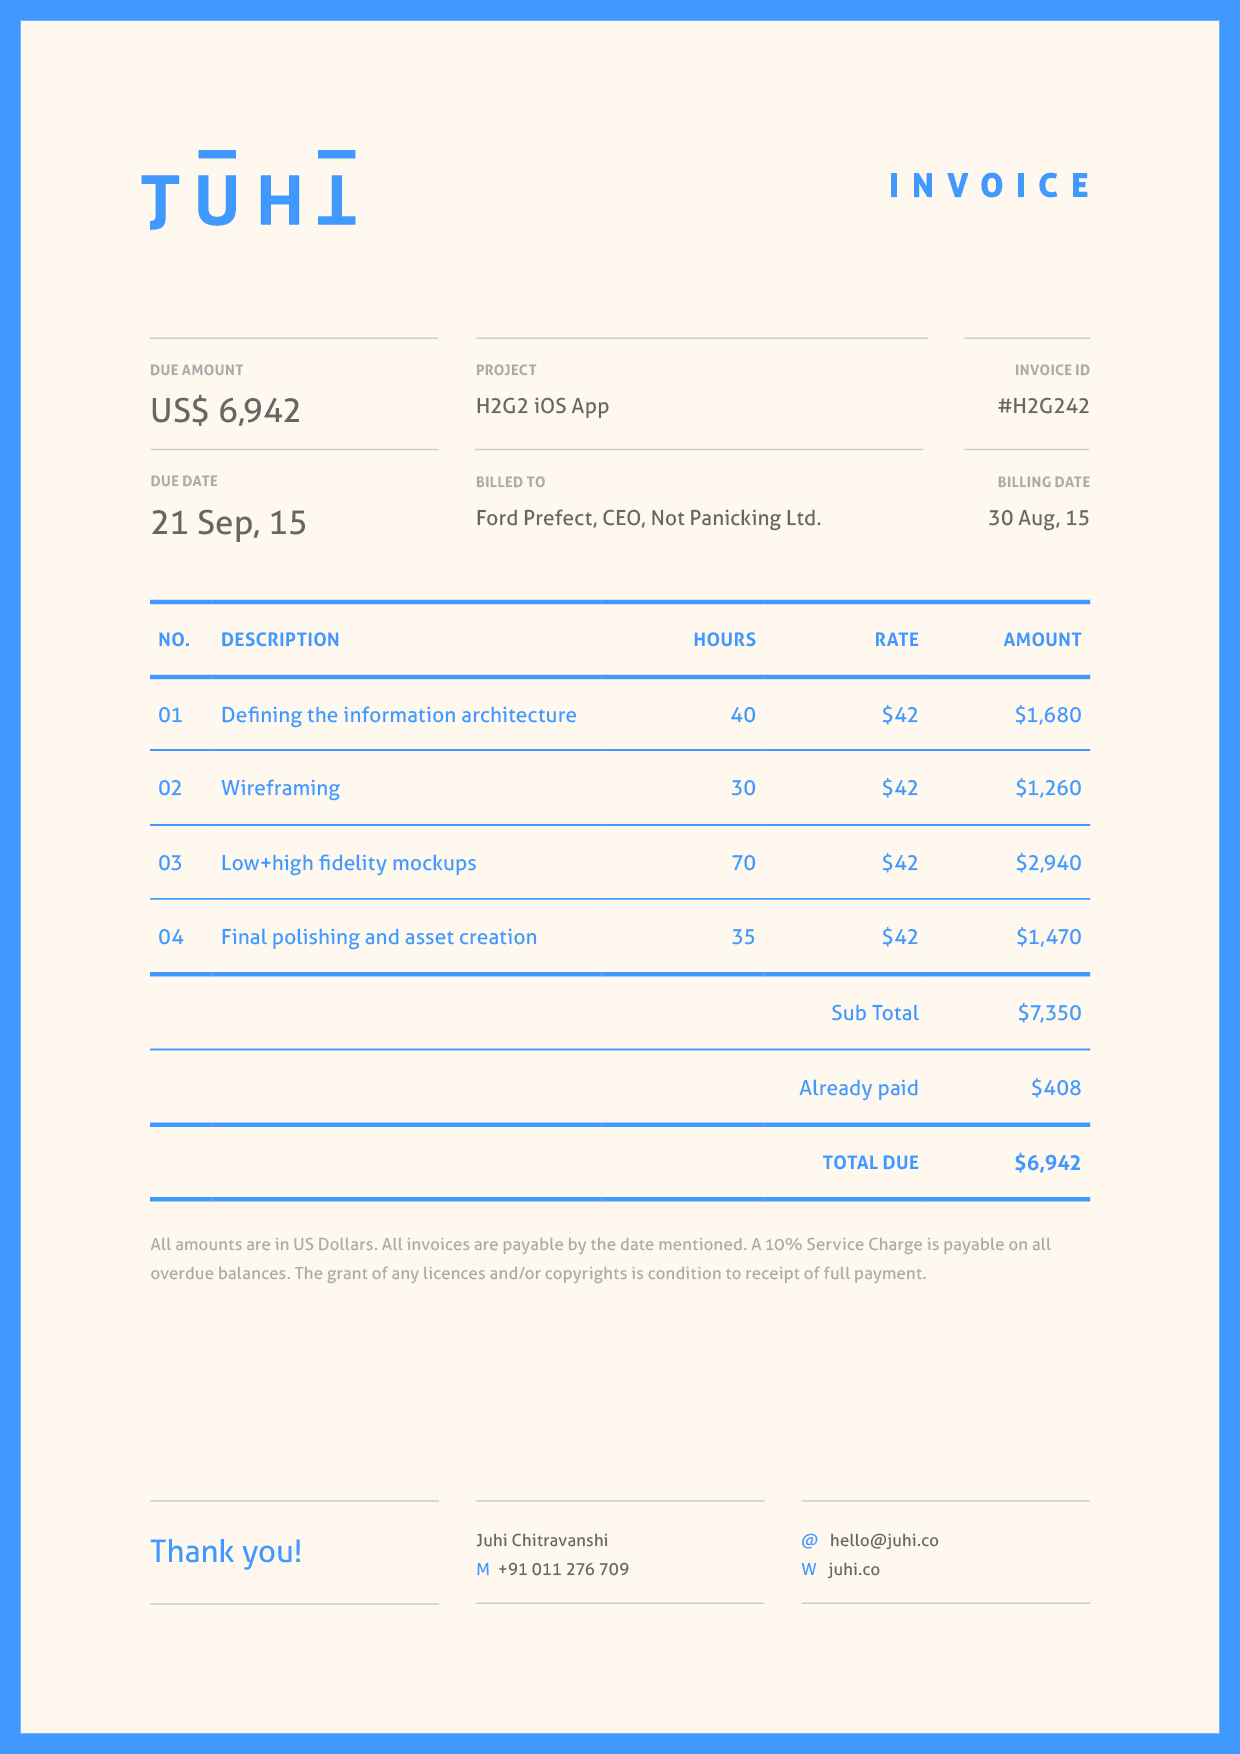 Coachoutletonlineplusus  Scenic Dont Hold Back On Your Invoice  Inspiring Designs  With Extraordinary Invoice By Juhi Chitravanshi Follow With Astonishing Sample Invoices Pdf Also Towing Invoice Template In Addition Printable Commercial Invoice And Harvest Invoice Template As Well As New Vehicle Invoice Price Additionally Invoice Billing Software From Inspirationfeedcom With Coachoutletonlineplusus  Extraordinary Dont Hold Back On Your Invoice  Inspiring Designs  With Astonishing Invoice By Juhi Chitravanshi Follow And Scenic Sample Invoices Pdf Also Towing Invoice Template In Addition Printable Commercial Invoice From Inspirationfeedcom